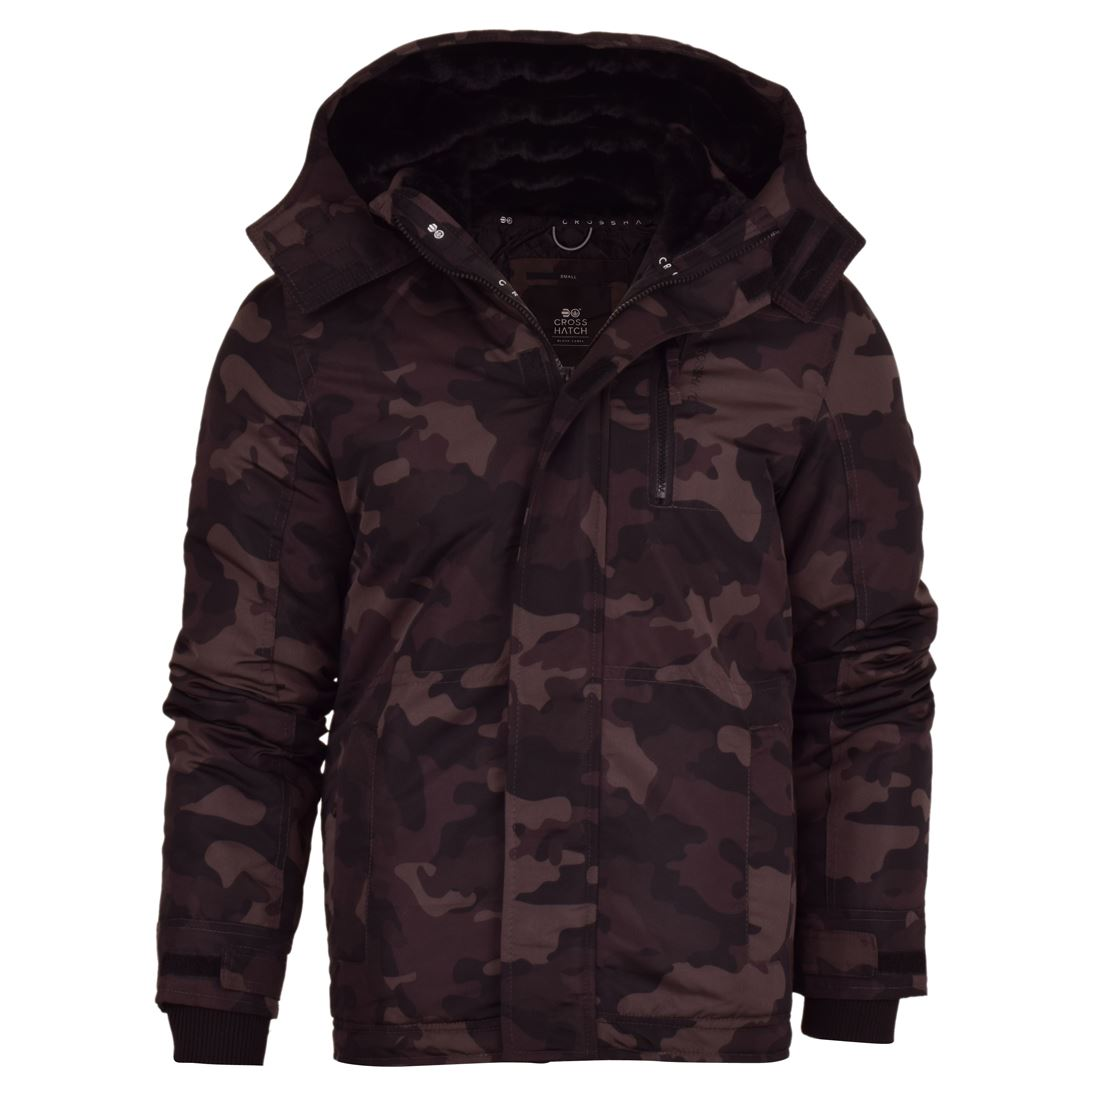 New Mens Crosshatch Hooded Jacket Genuine Hoodie Zipped with Pockets S-XXL